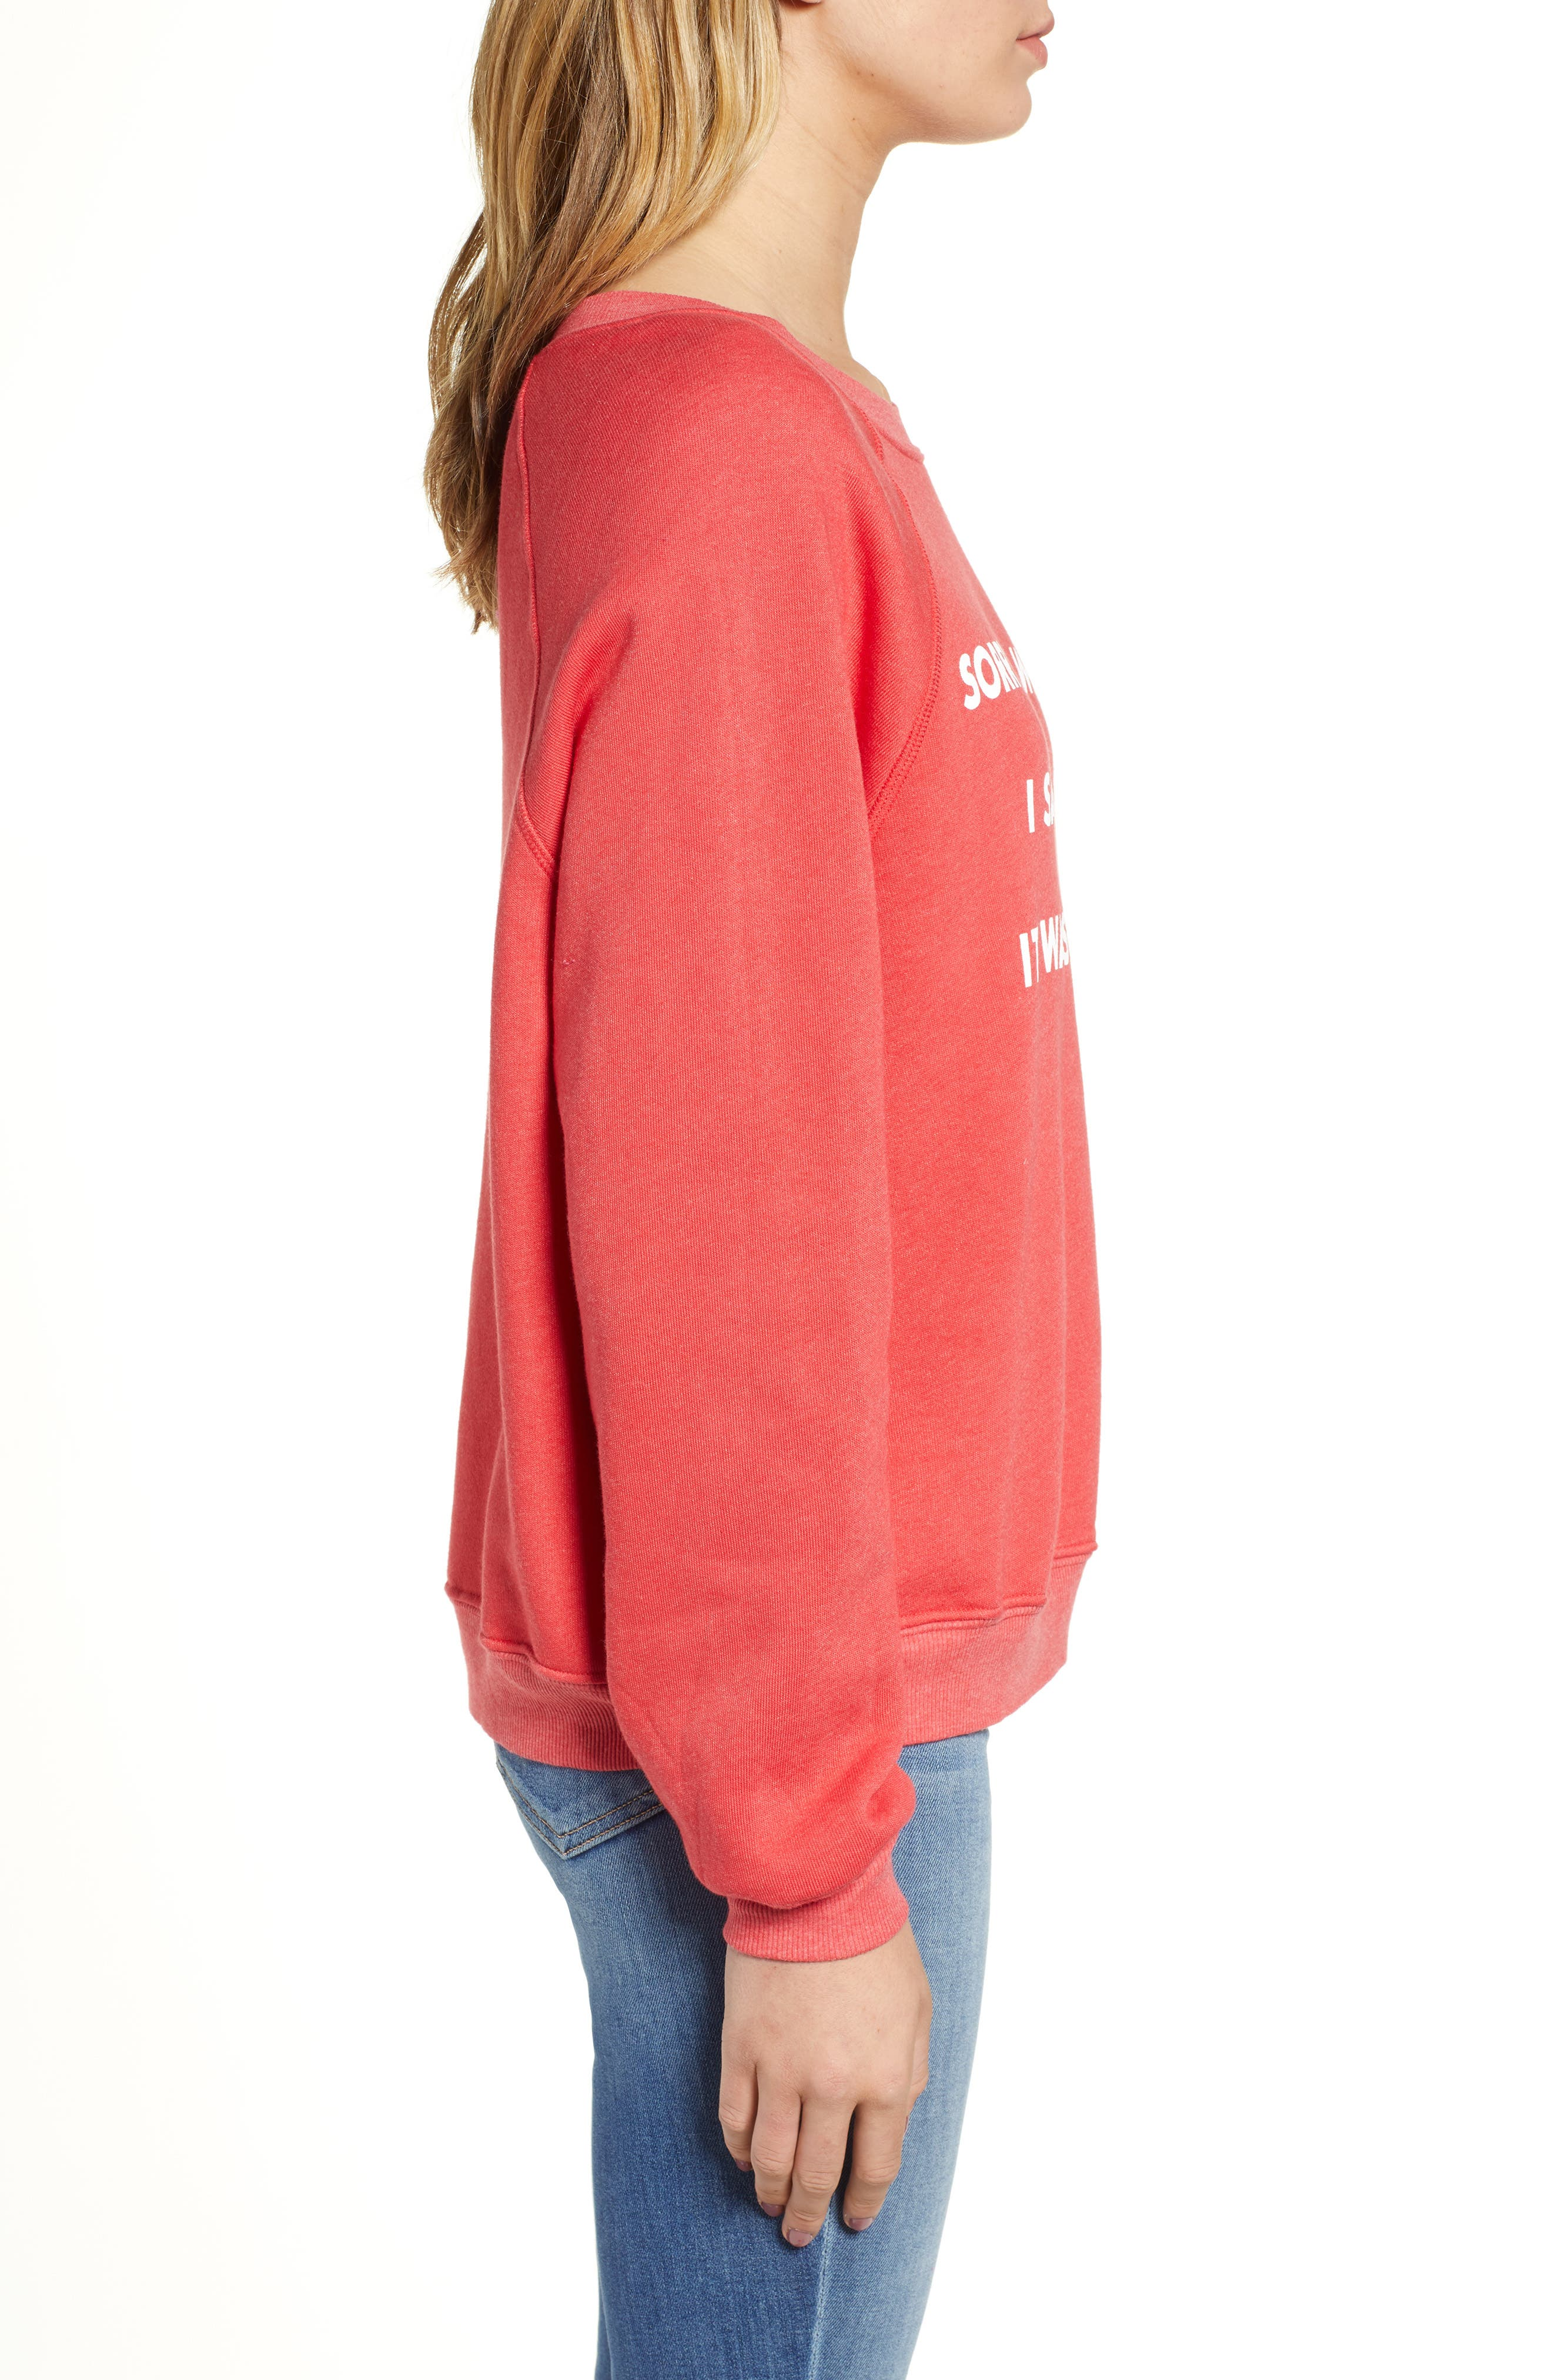 Monday Sommer Sweatshirt,                             Alternate thumbnail 3, color,                             SCARLET